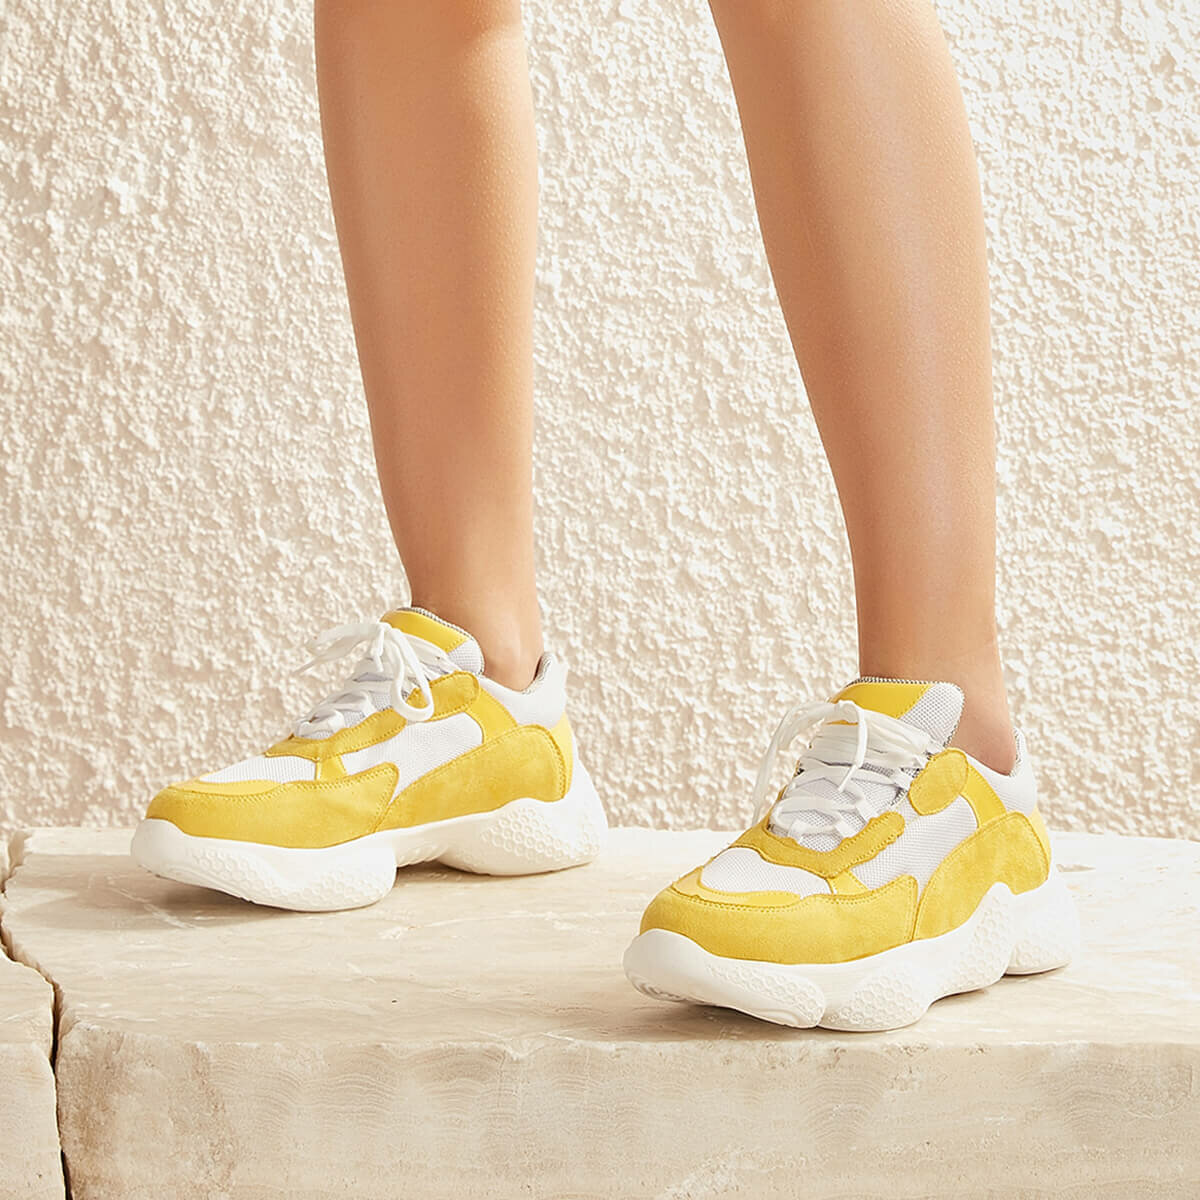 FLO FLITTER51Z Yellow Women 'S Sneaker Shoes BUTIGO